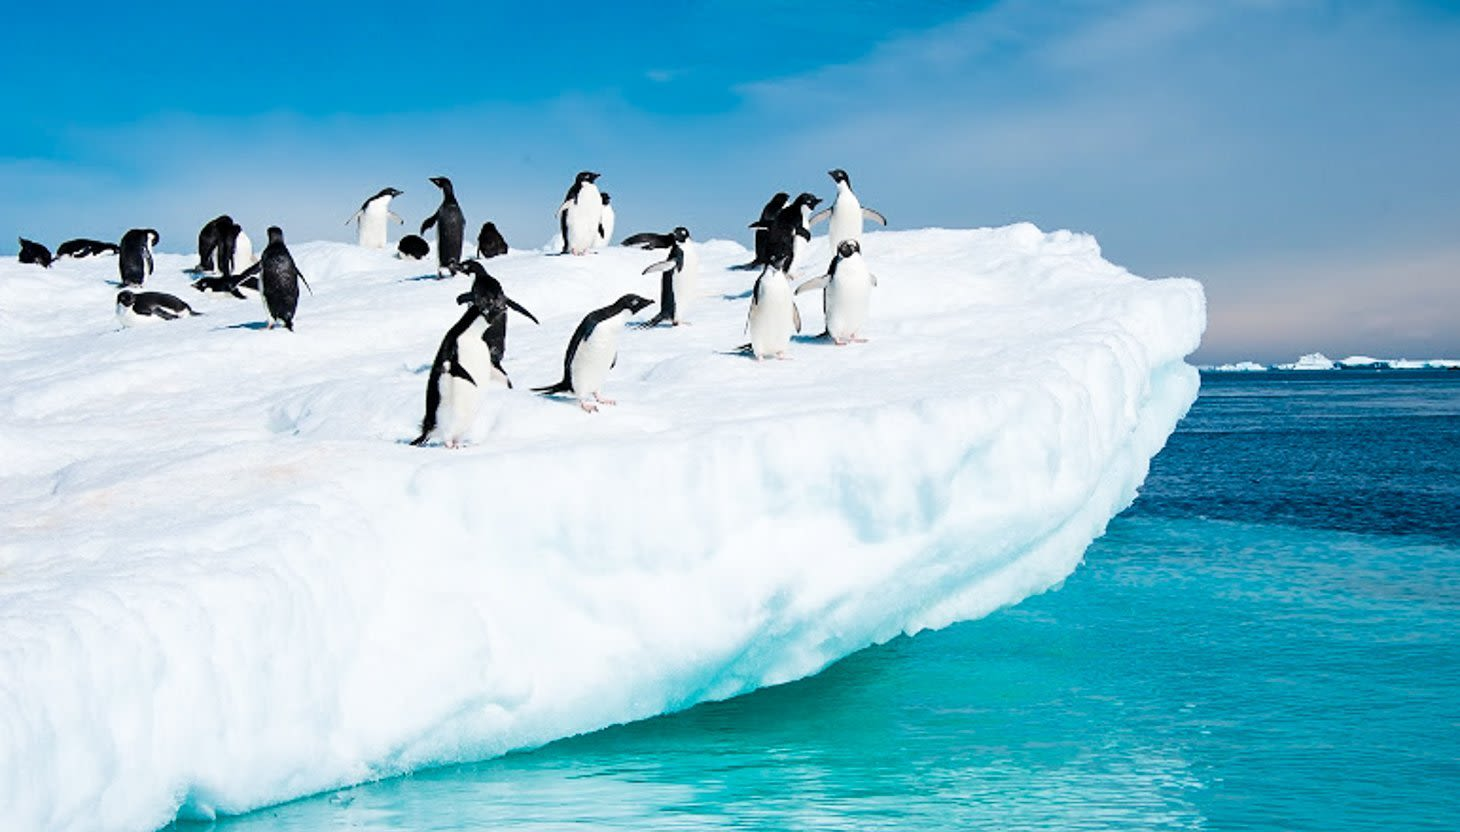 Group of penguins stands on iceberg